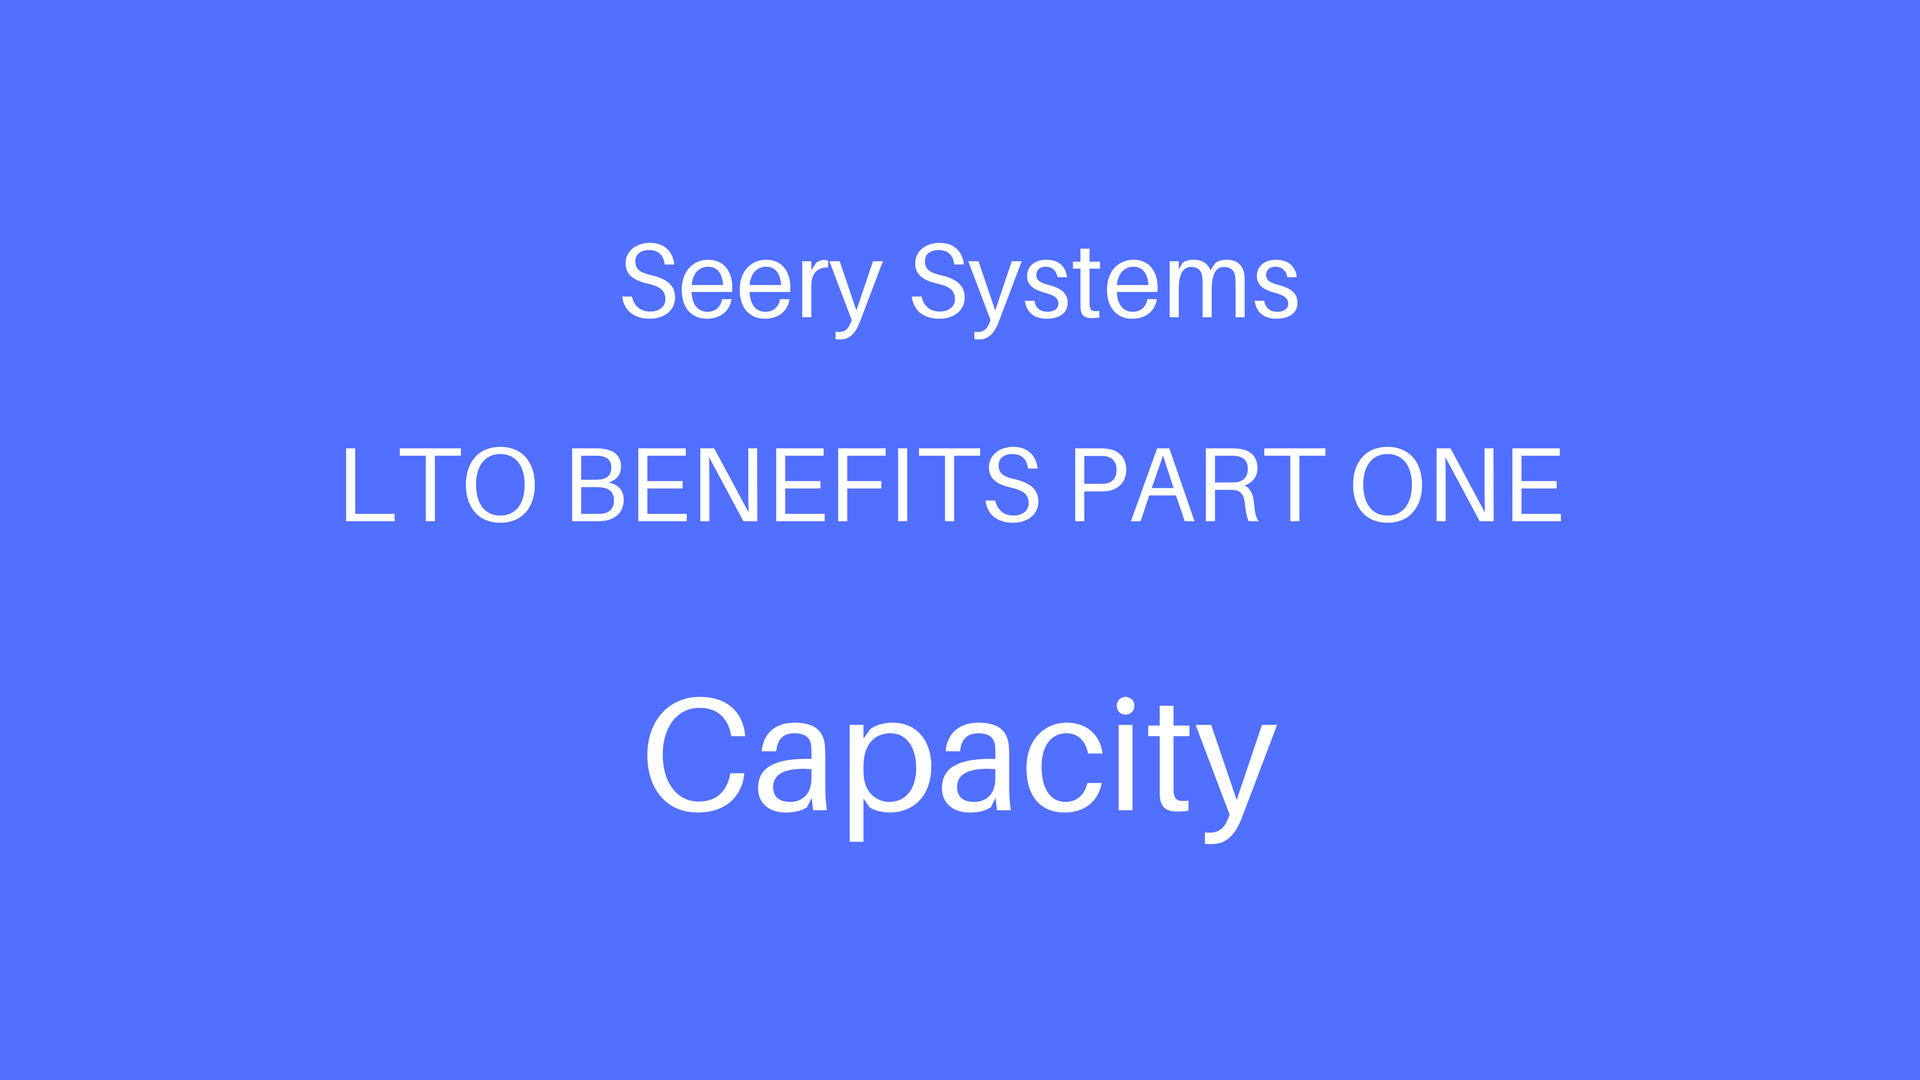 LTO Benefits Part 1 - Capacity